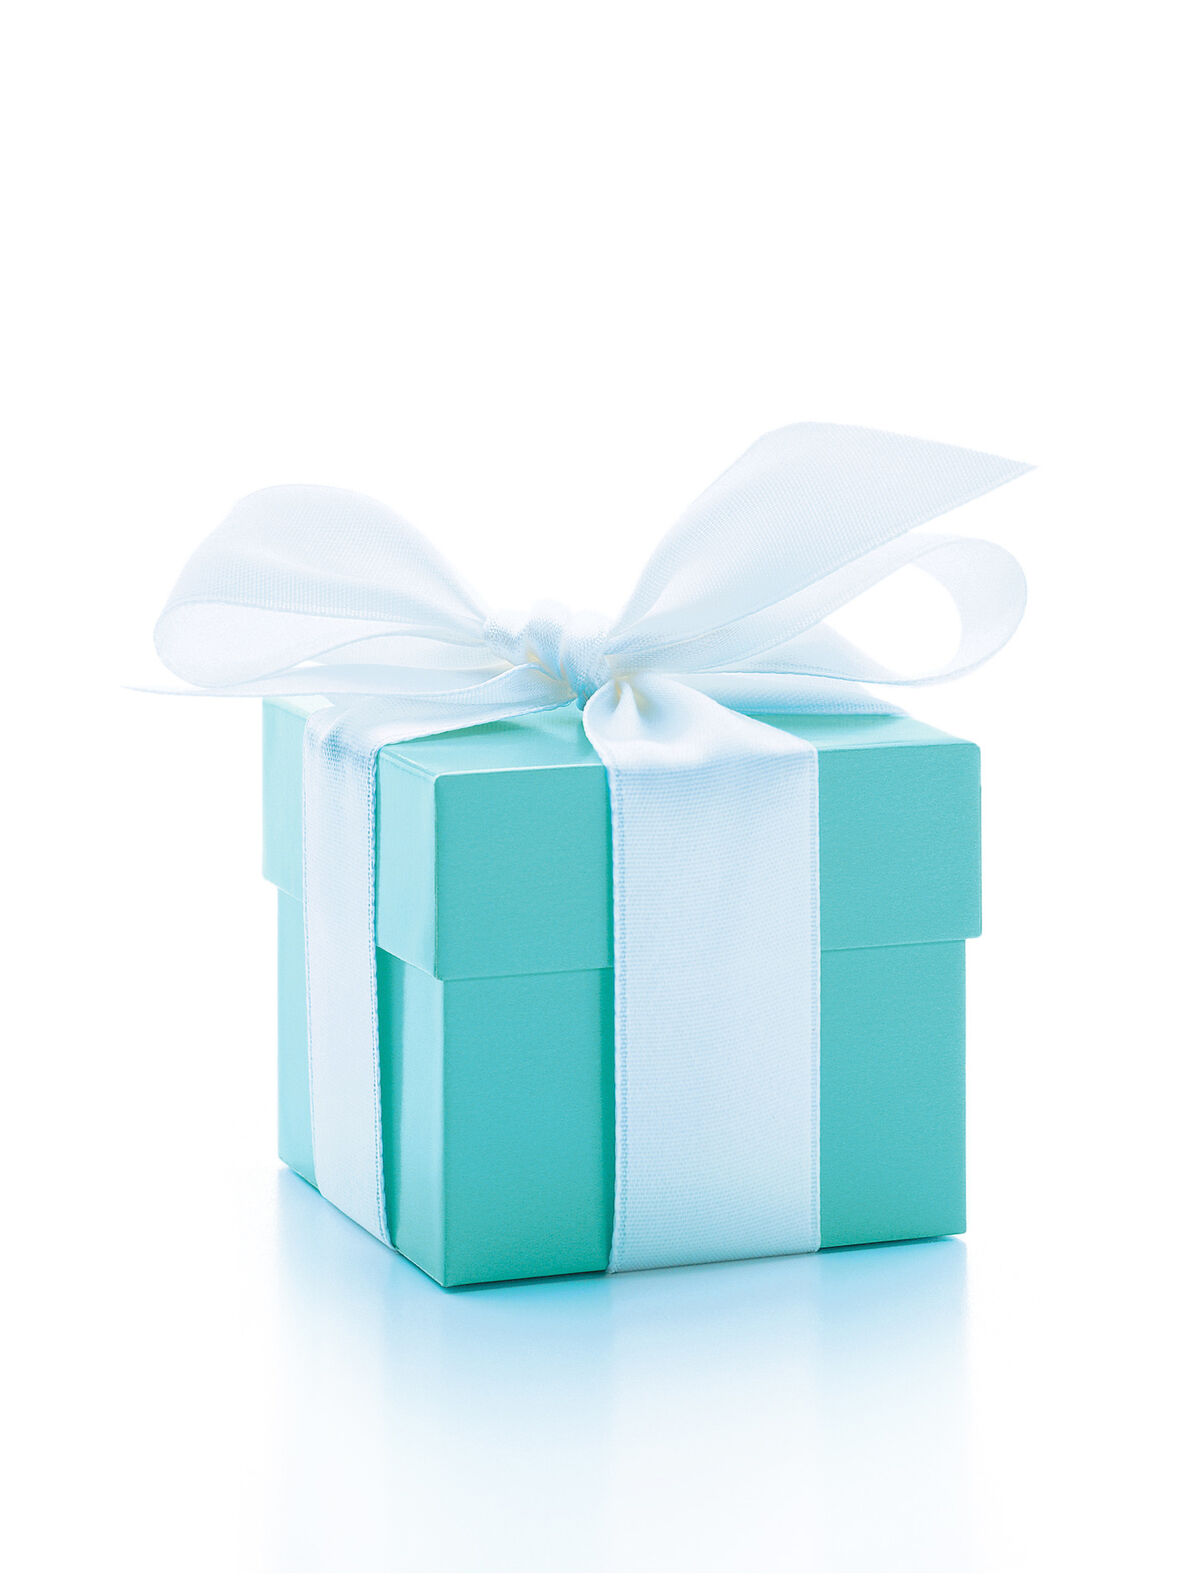 2b70ee4617 Tiffany Blue Box®. © Tiffany & Co. Courtesy of the Tiffany &